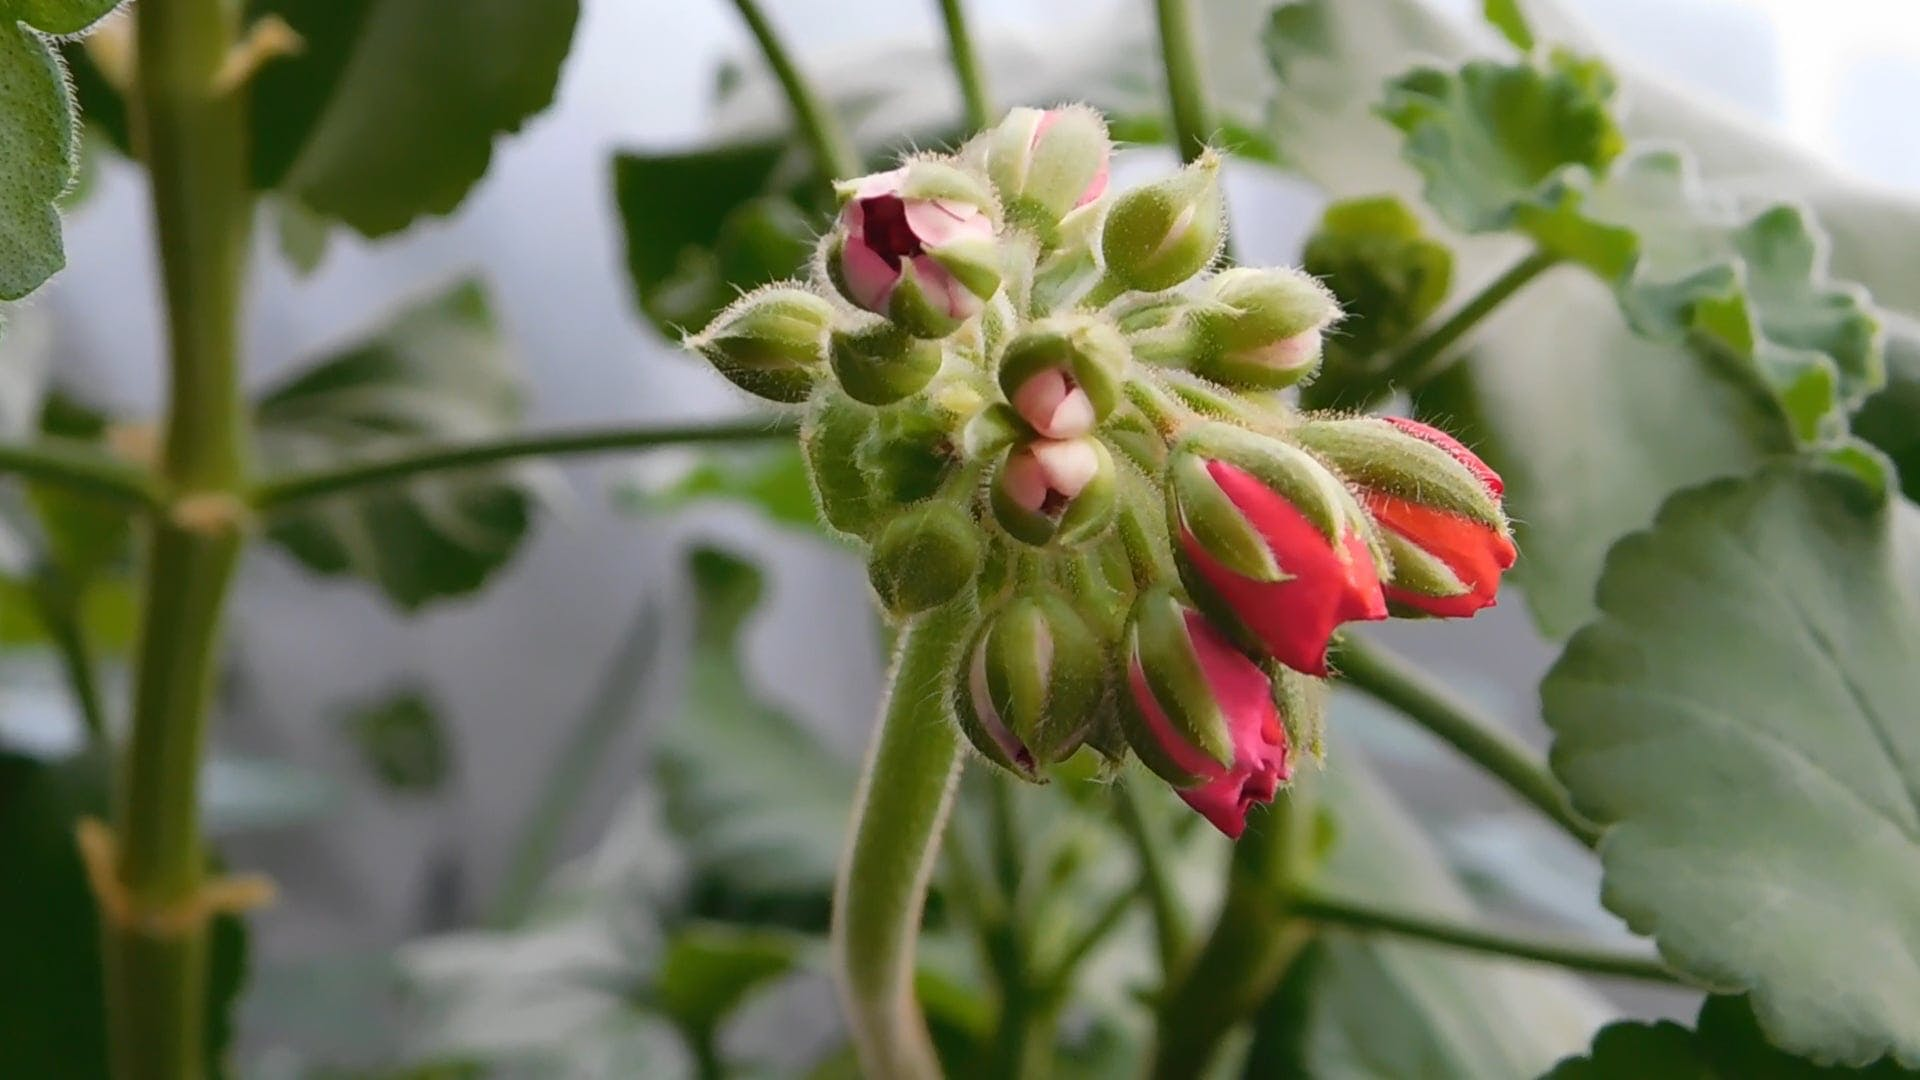 Close-Up View Of  Flower Buds